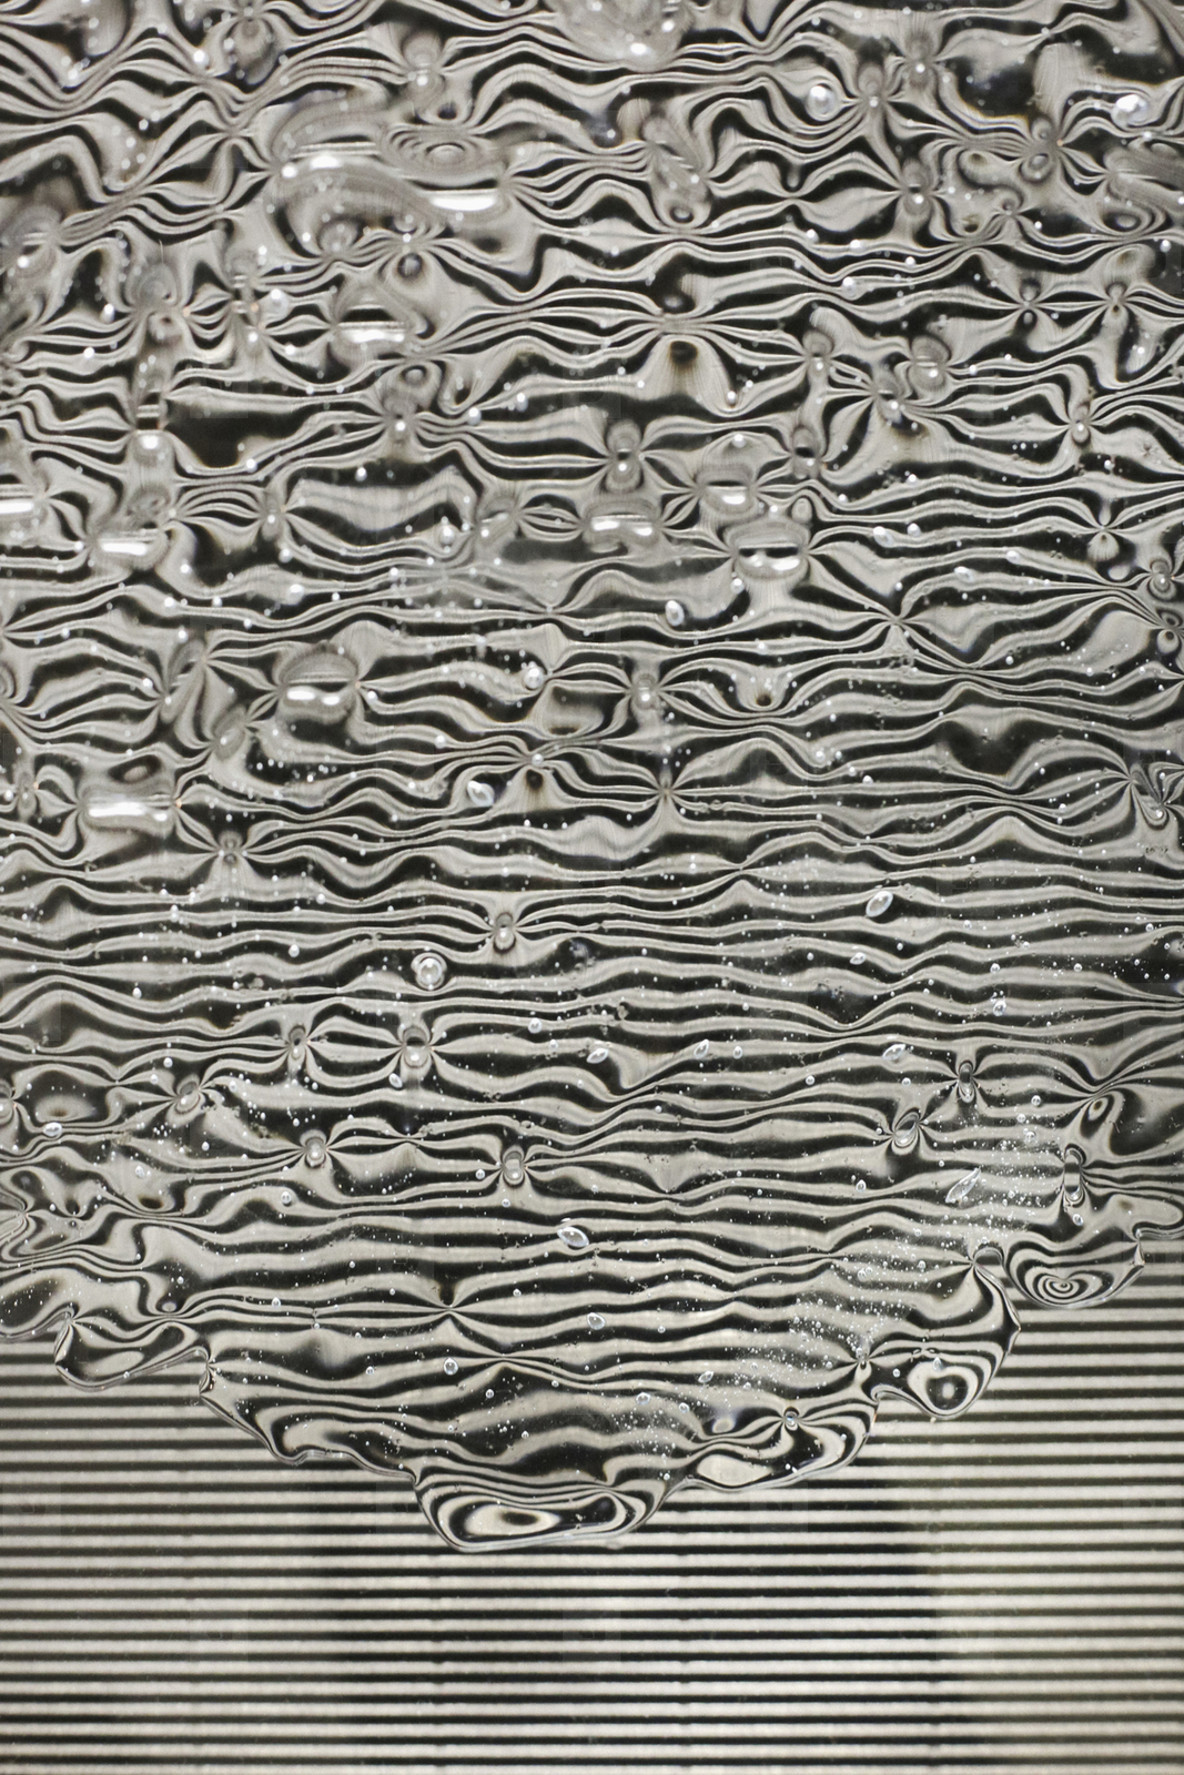 Water rippling black and white lines